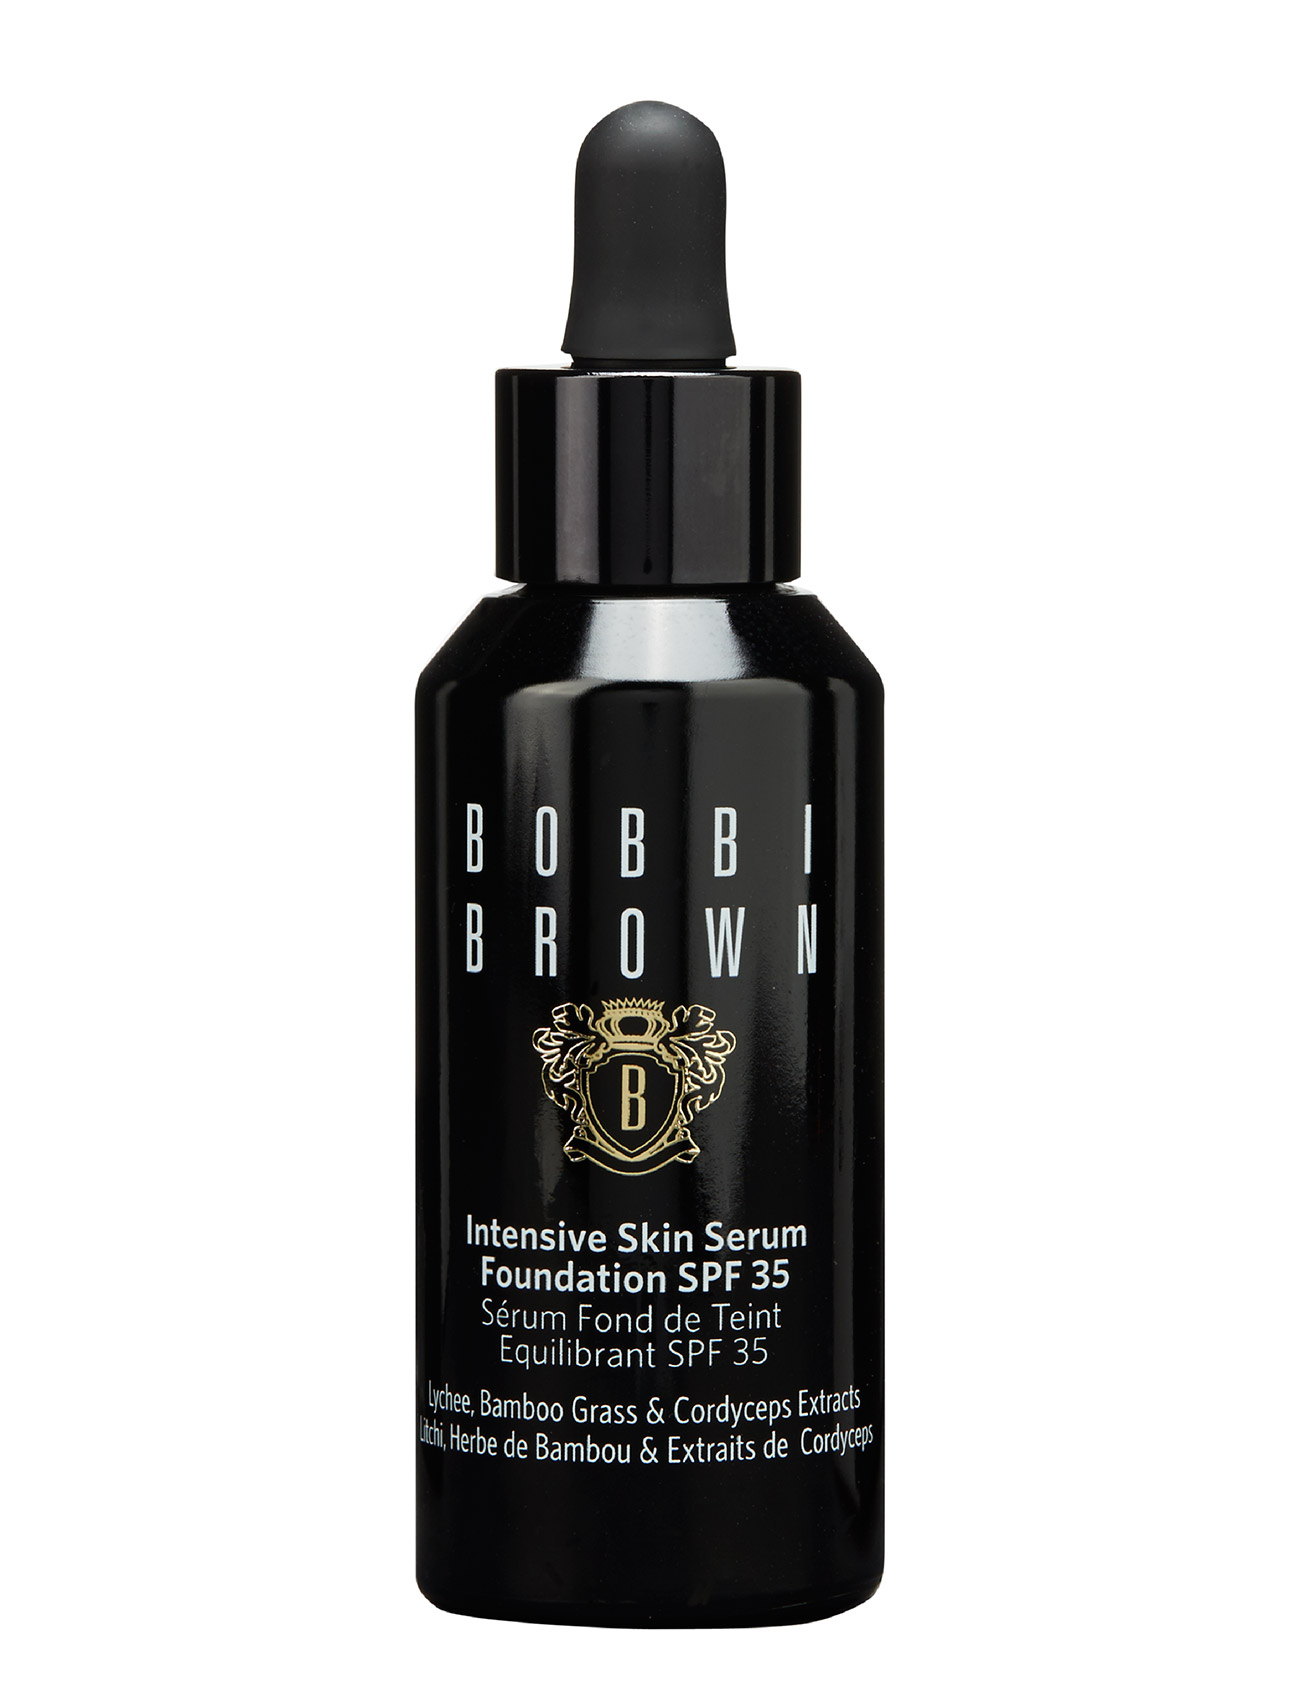 Intensive skin serum foundation spf 40, natural tan 4,25 fra bobbi brown på boozt.com dk